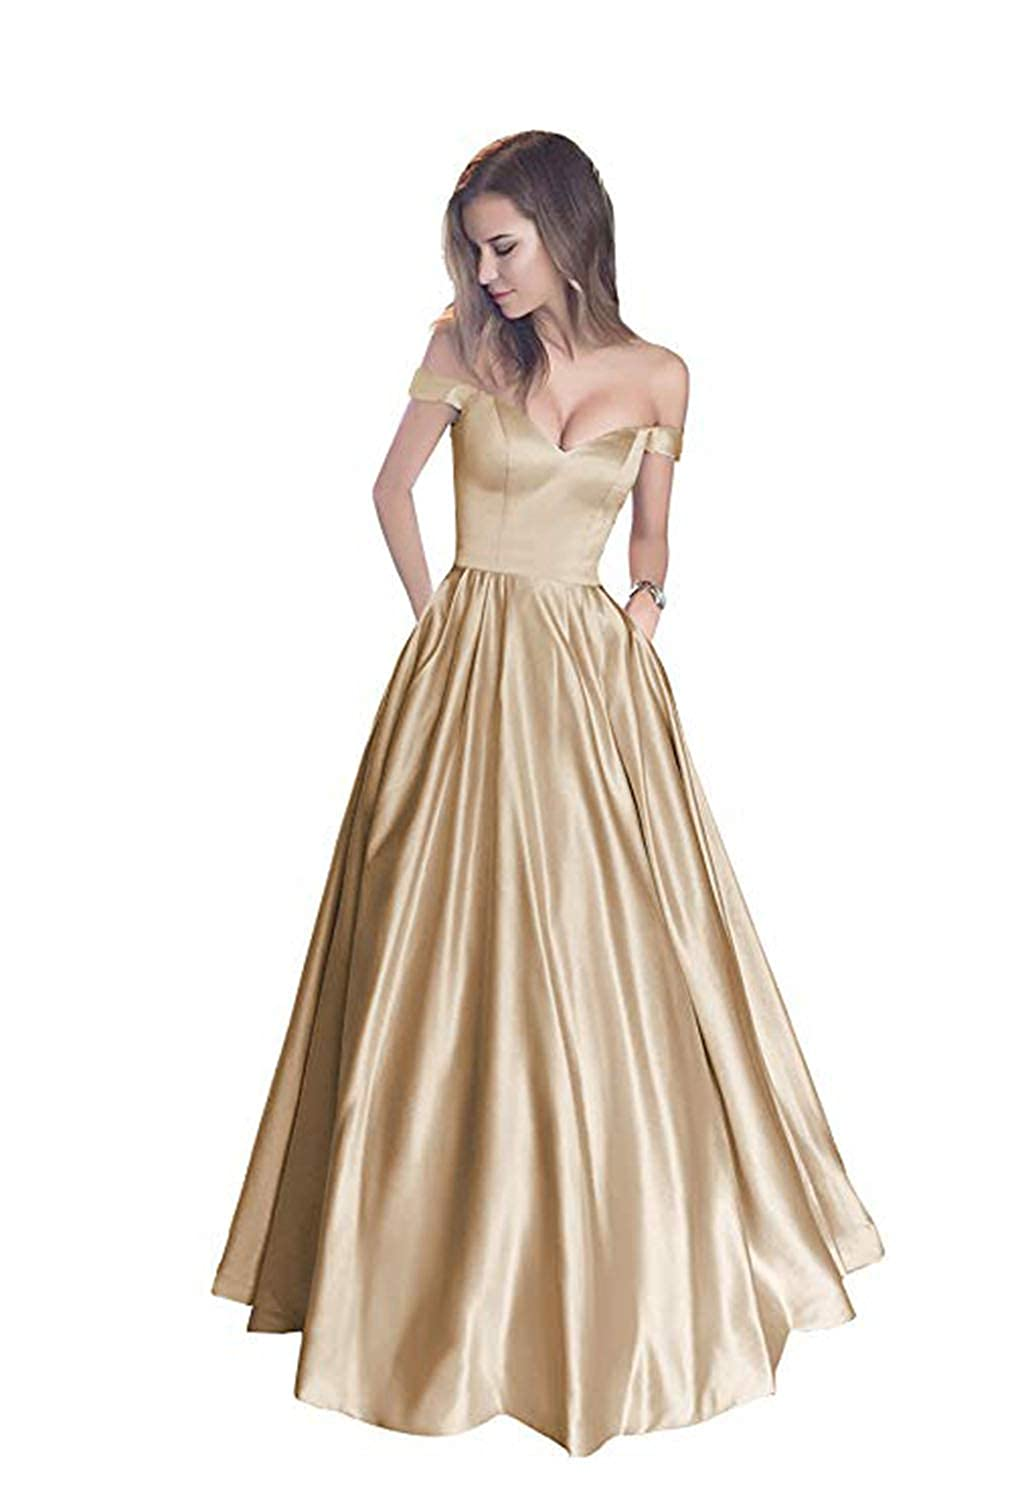 Champagne without Belt FJMM Womens Off The Shoulder Beaded ALine Prom Dress for Party